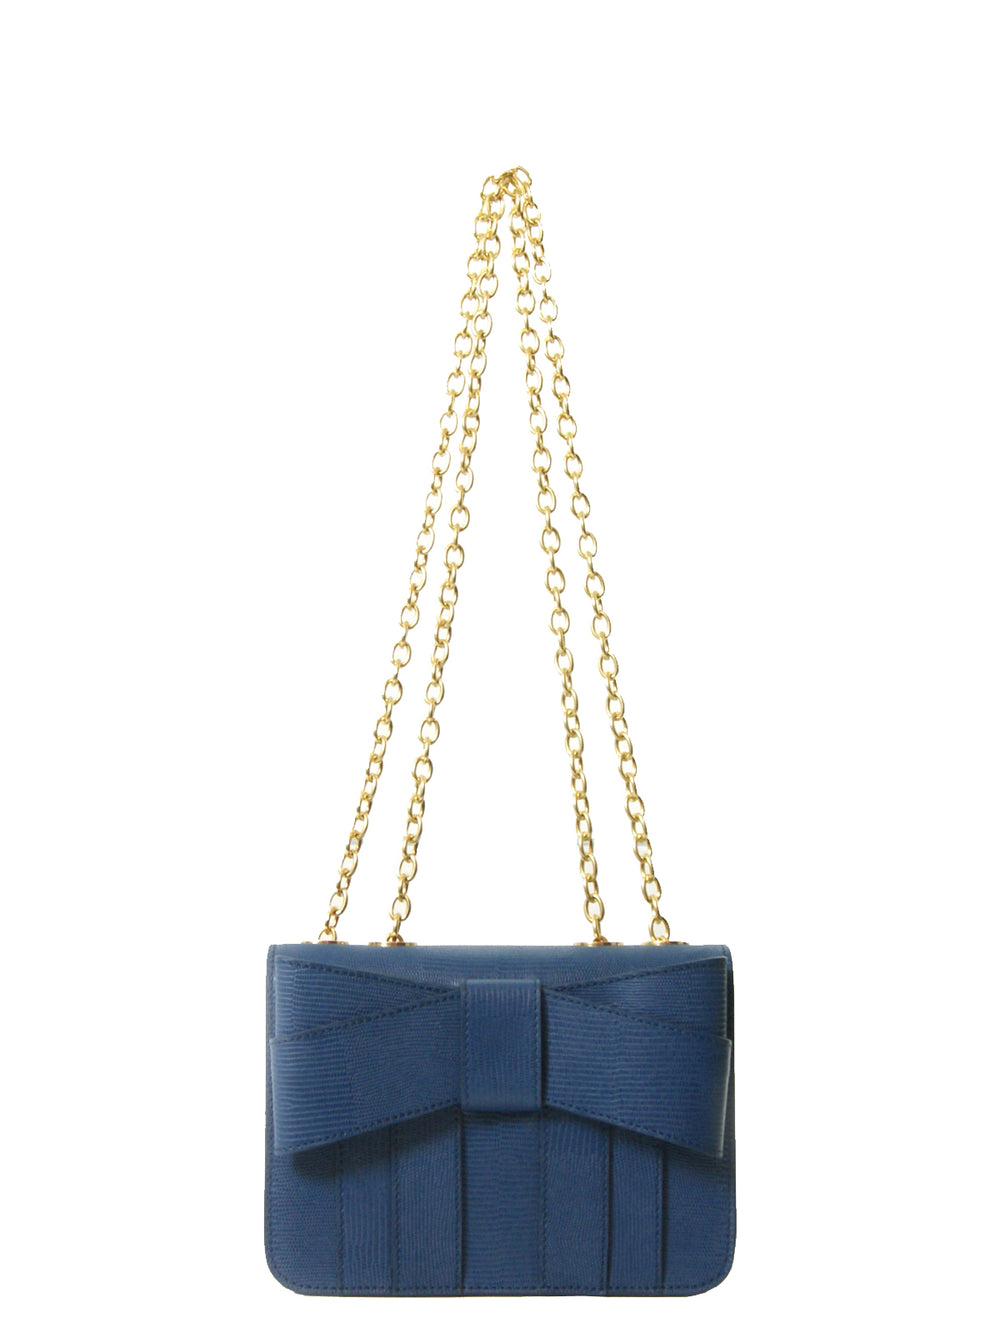 Shirley Bow Cross Body, Z SPOKE BY ZAC POSEN - elilhaam.com